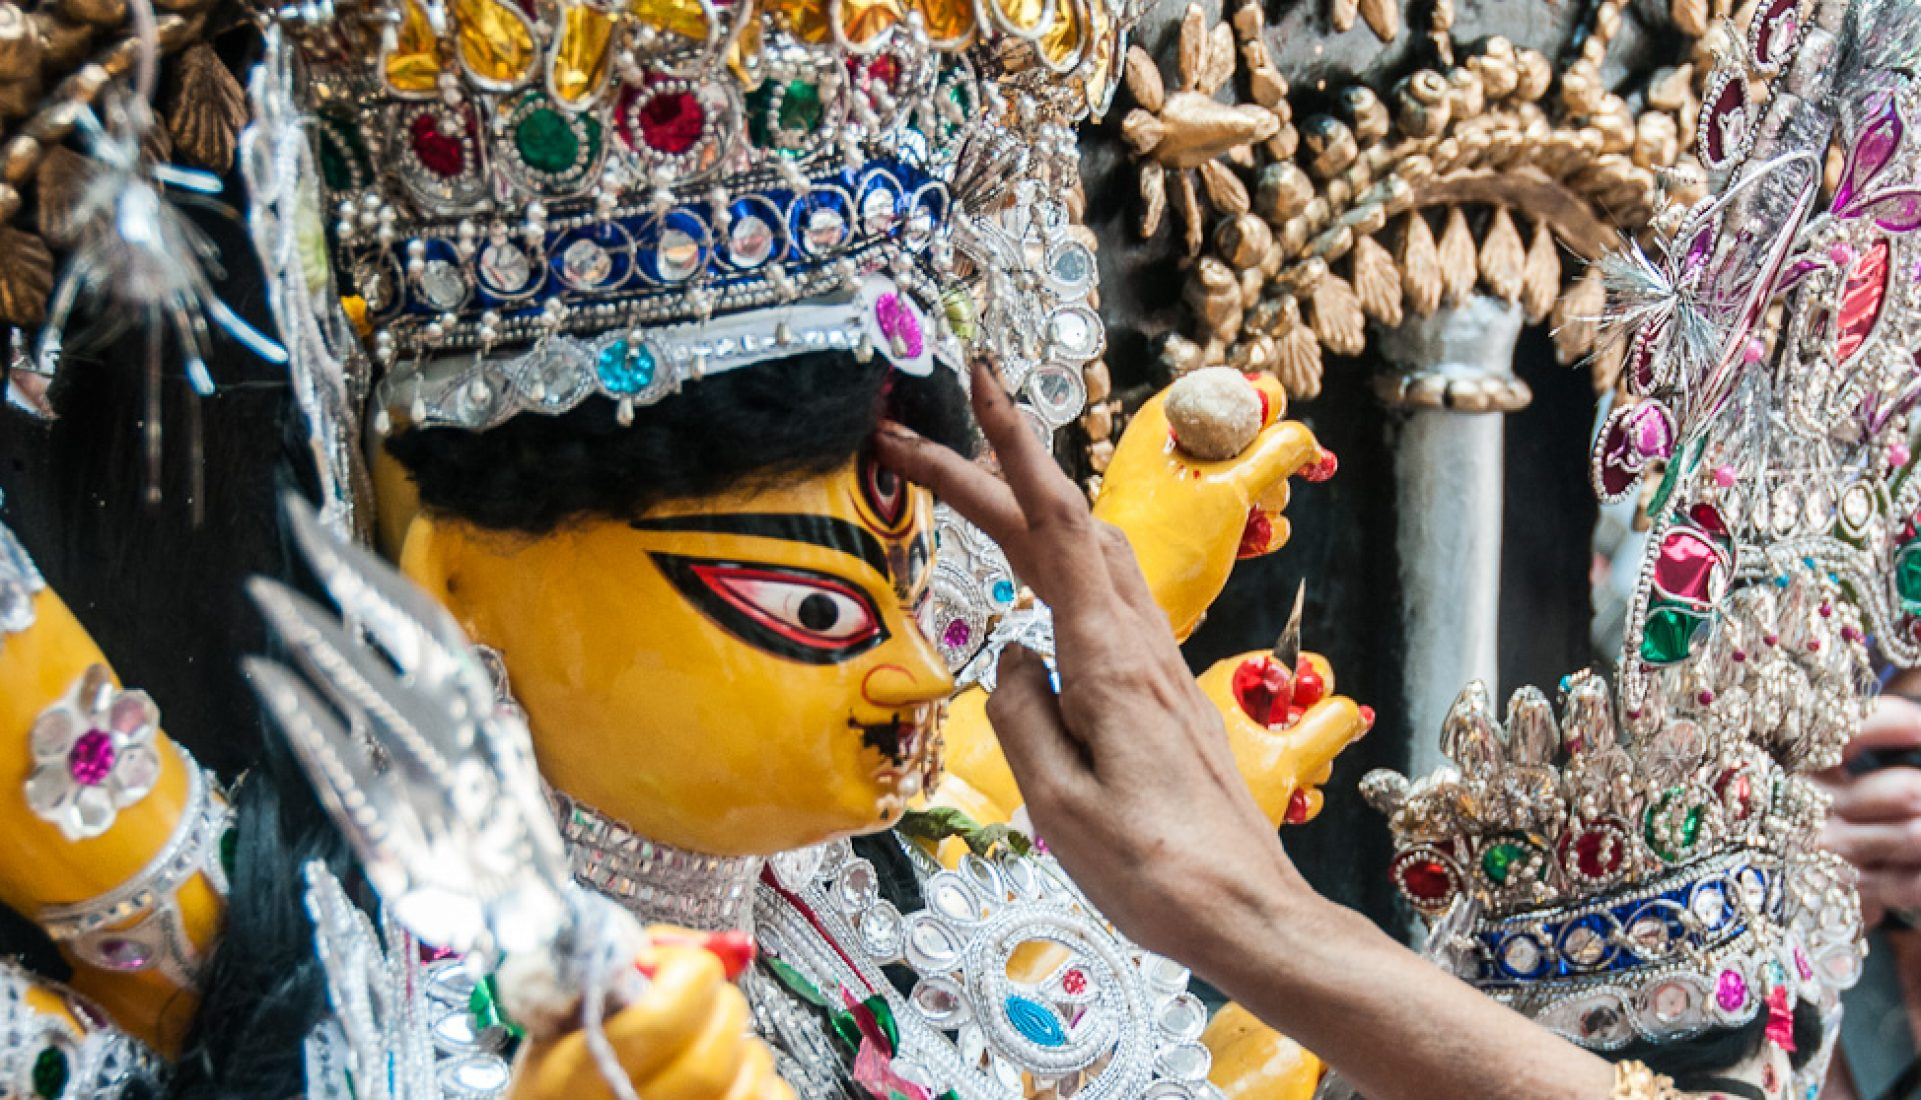 Durga Puja, the Worship of the Hindu Goddess Durga, Returns to Calcutta, India (part 2)